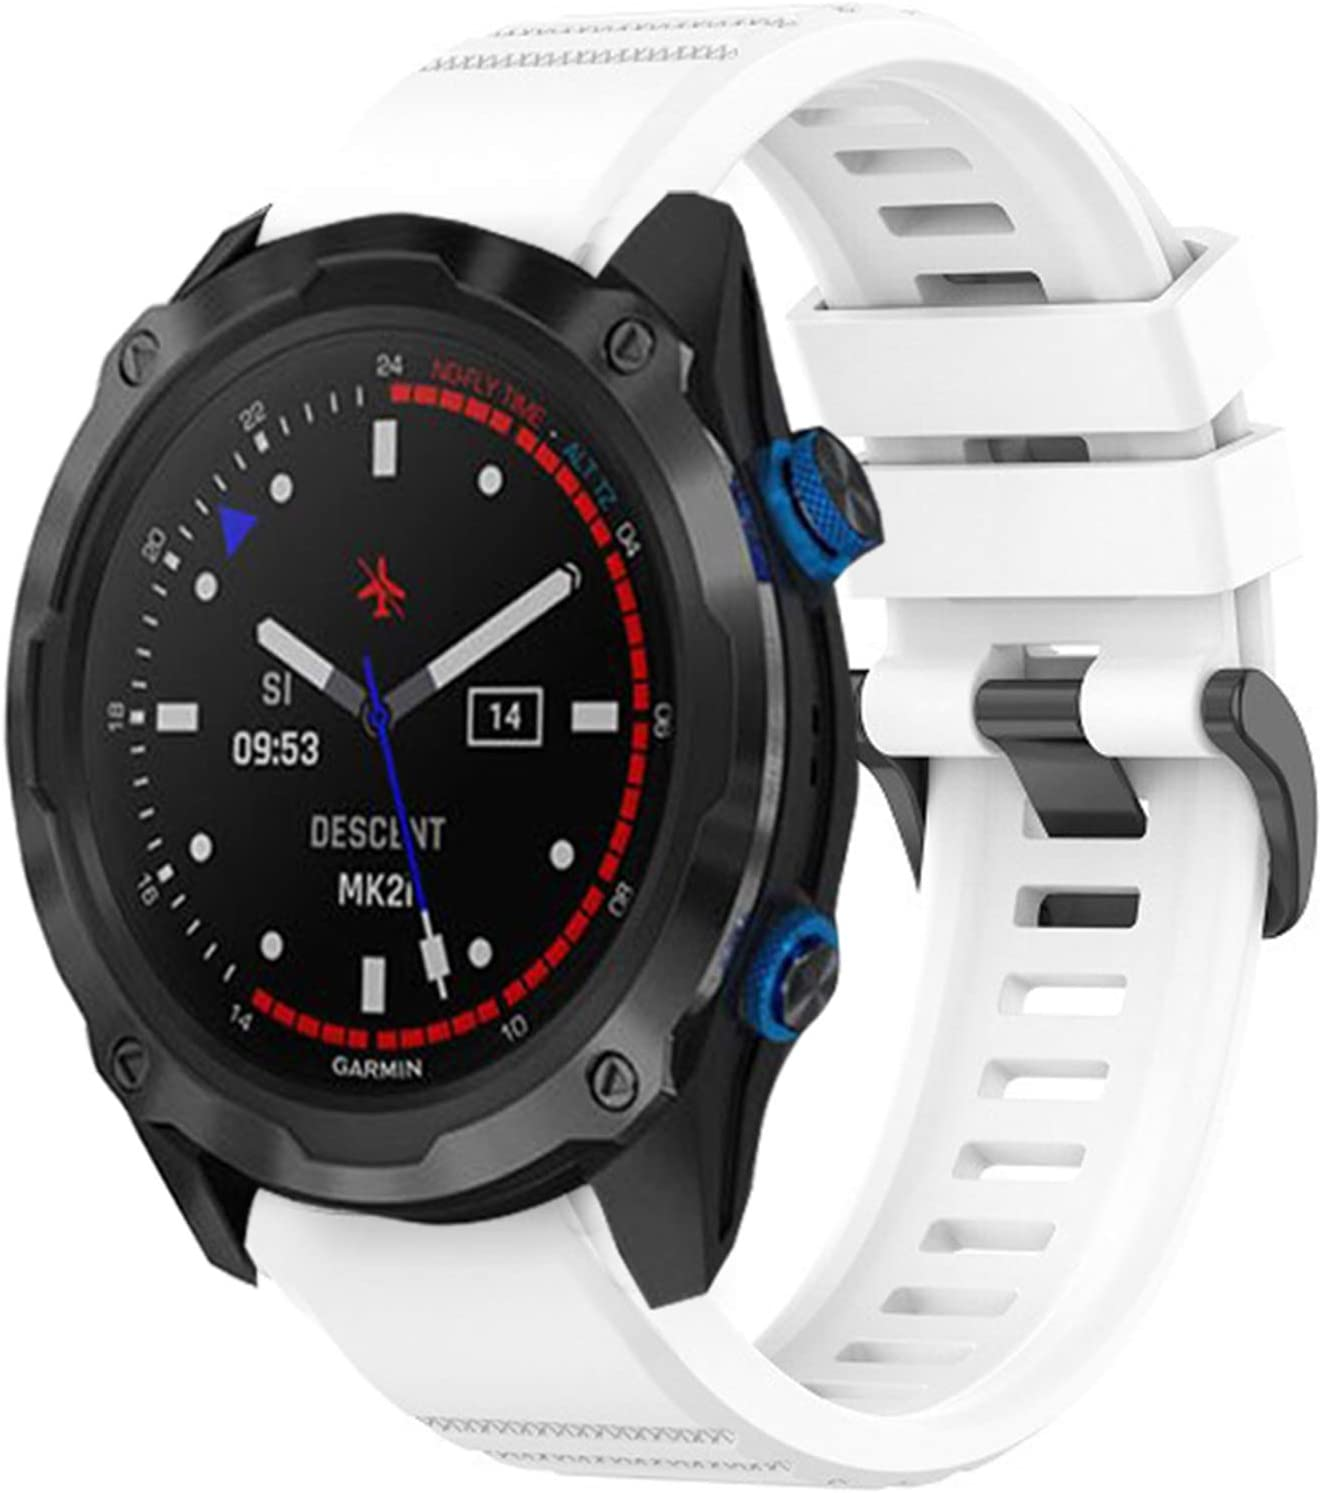 Compatible with Garmin Descent Mk2i shopping Repla Same day shipping Youkei Bands Silicone